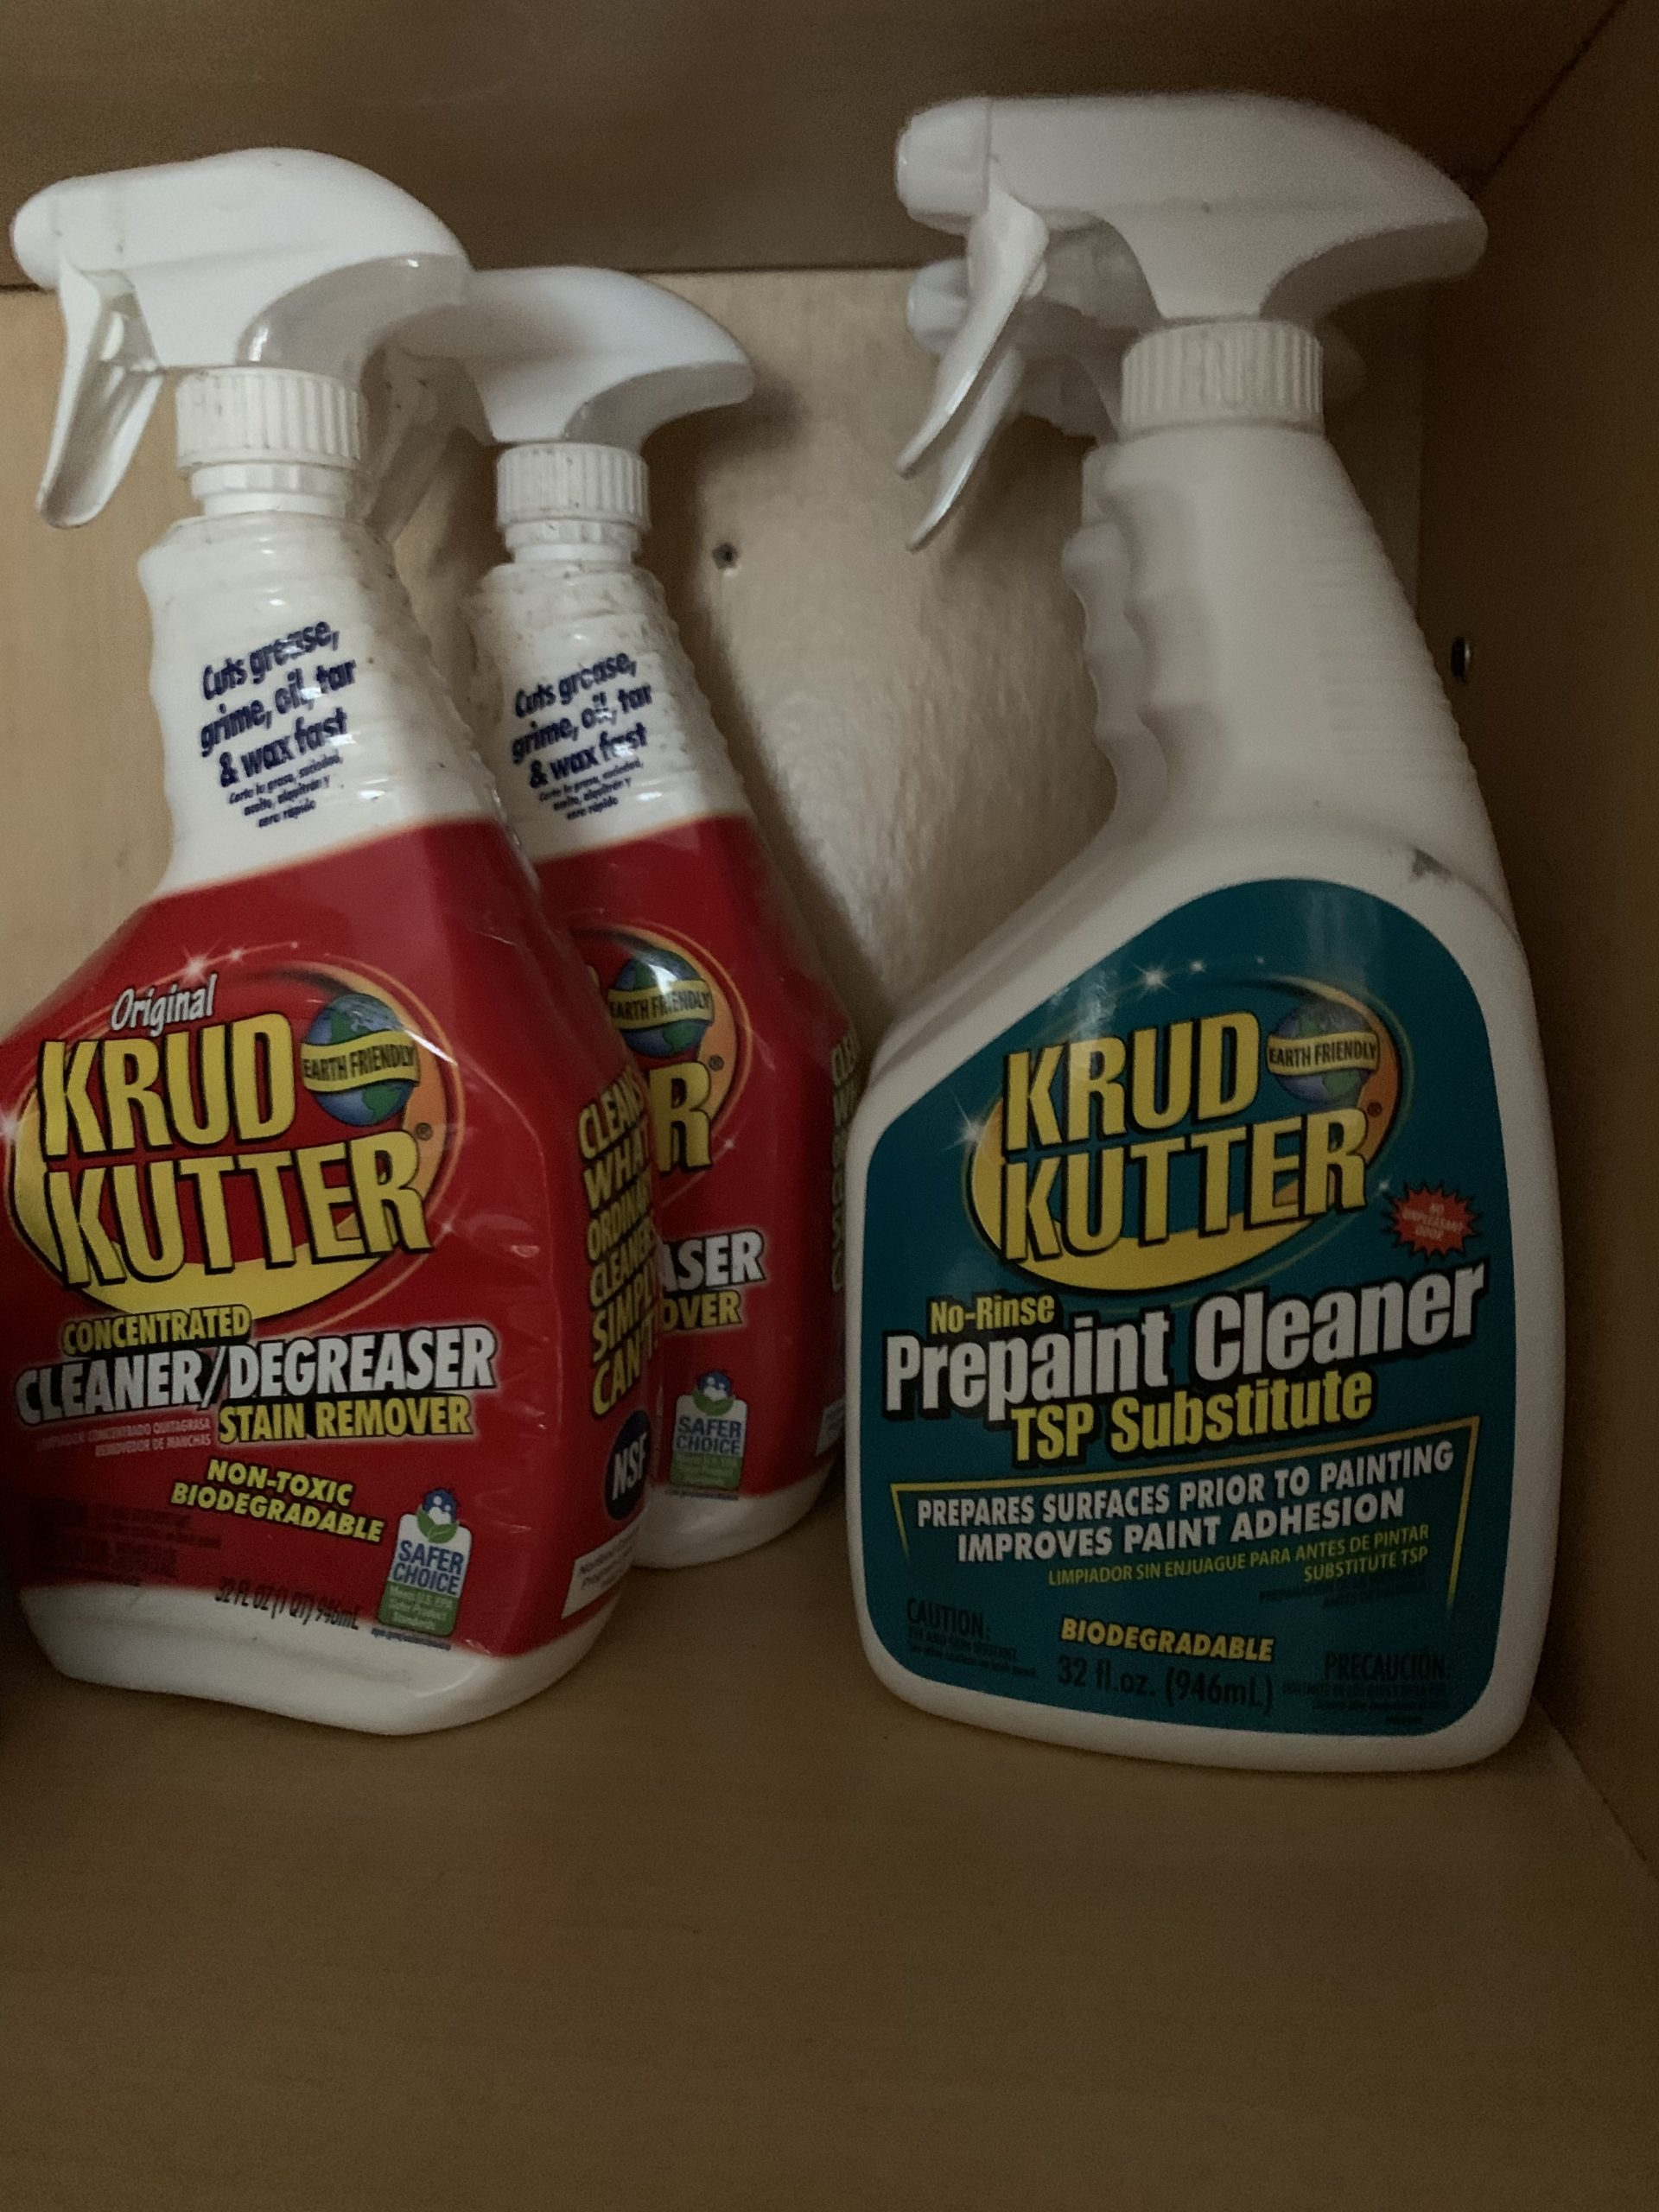 Krud Kutter degreaser - How to clean kitchen cabinets before painting them